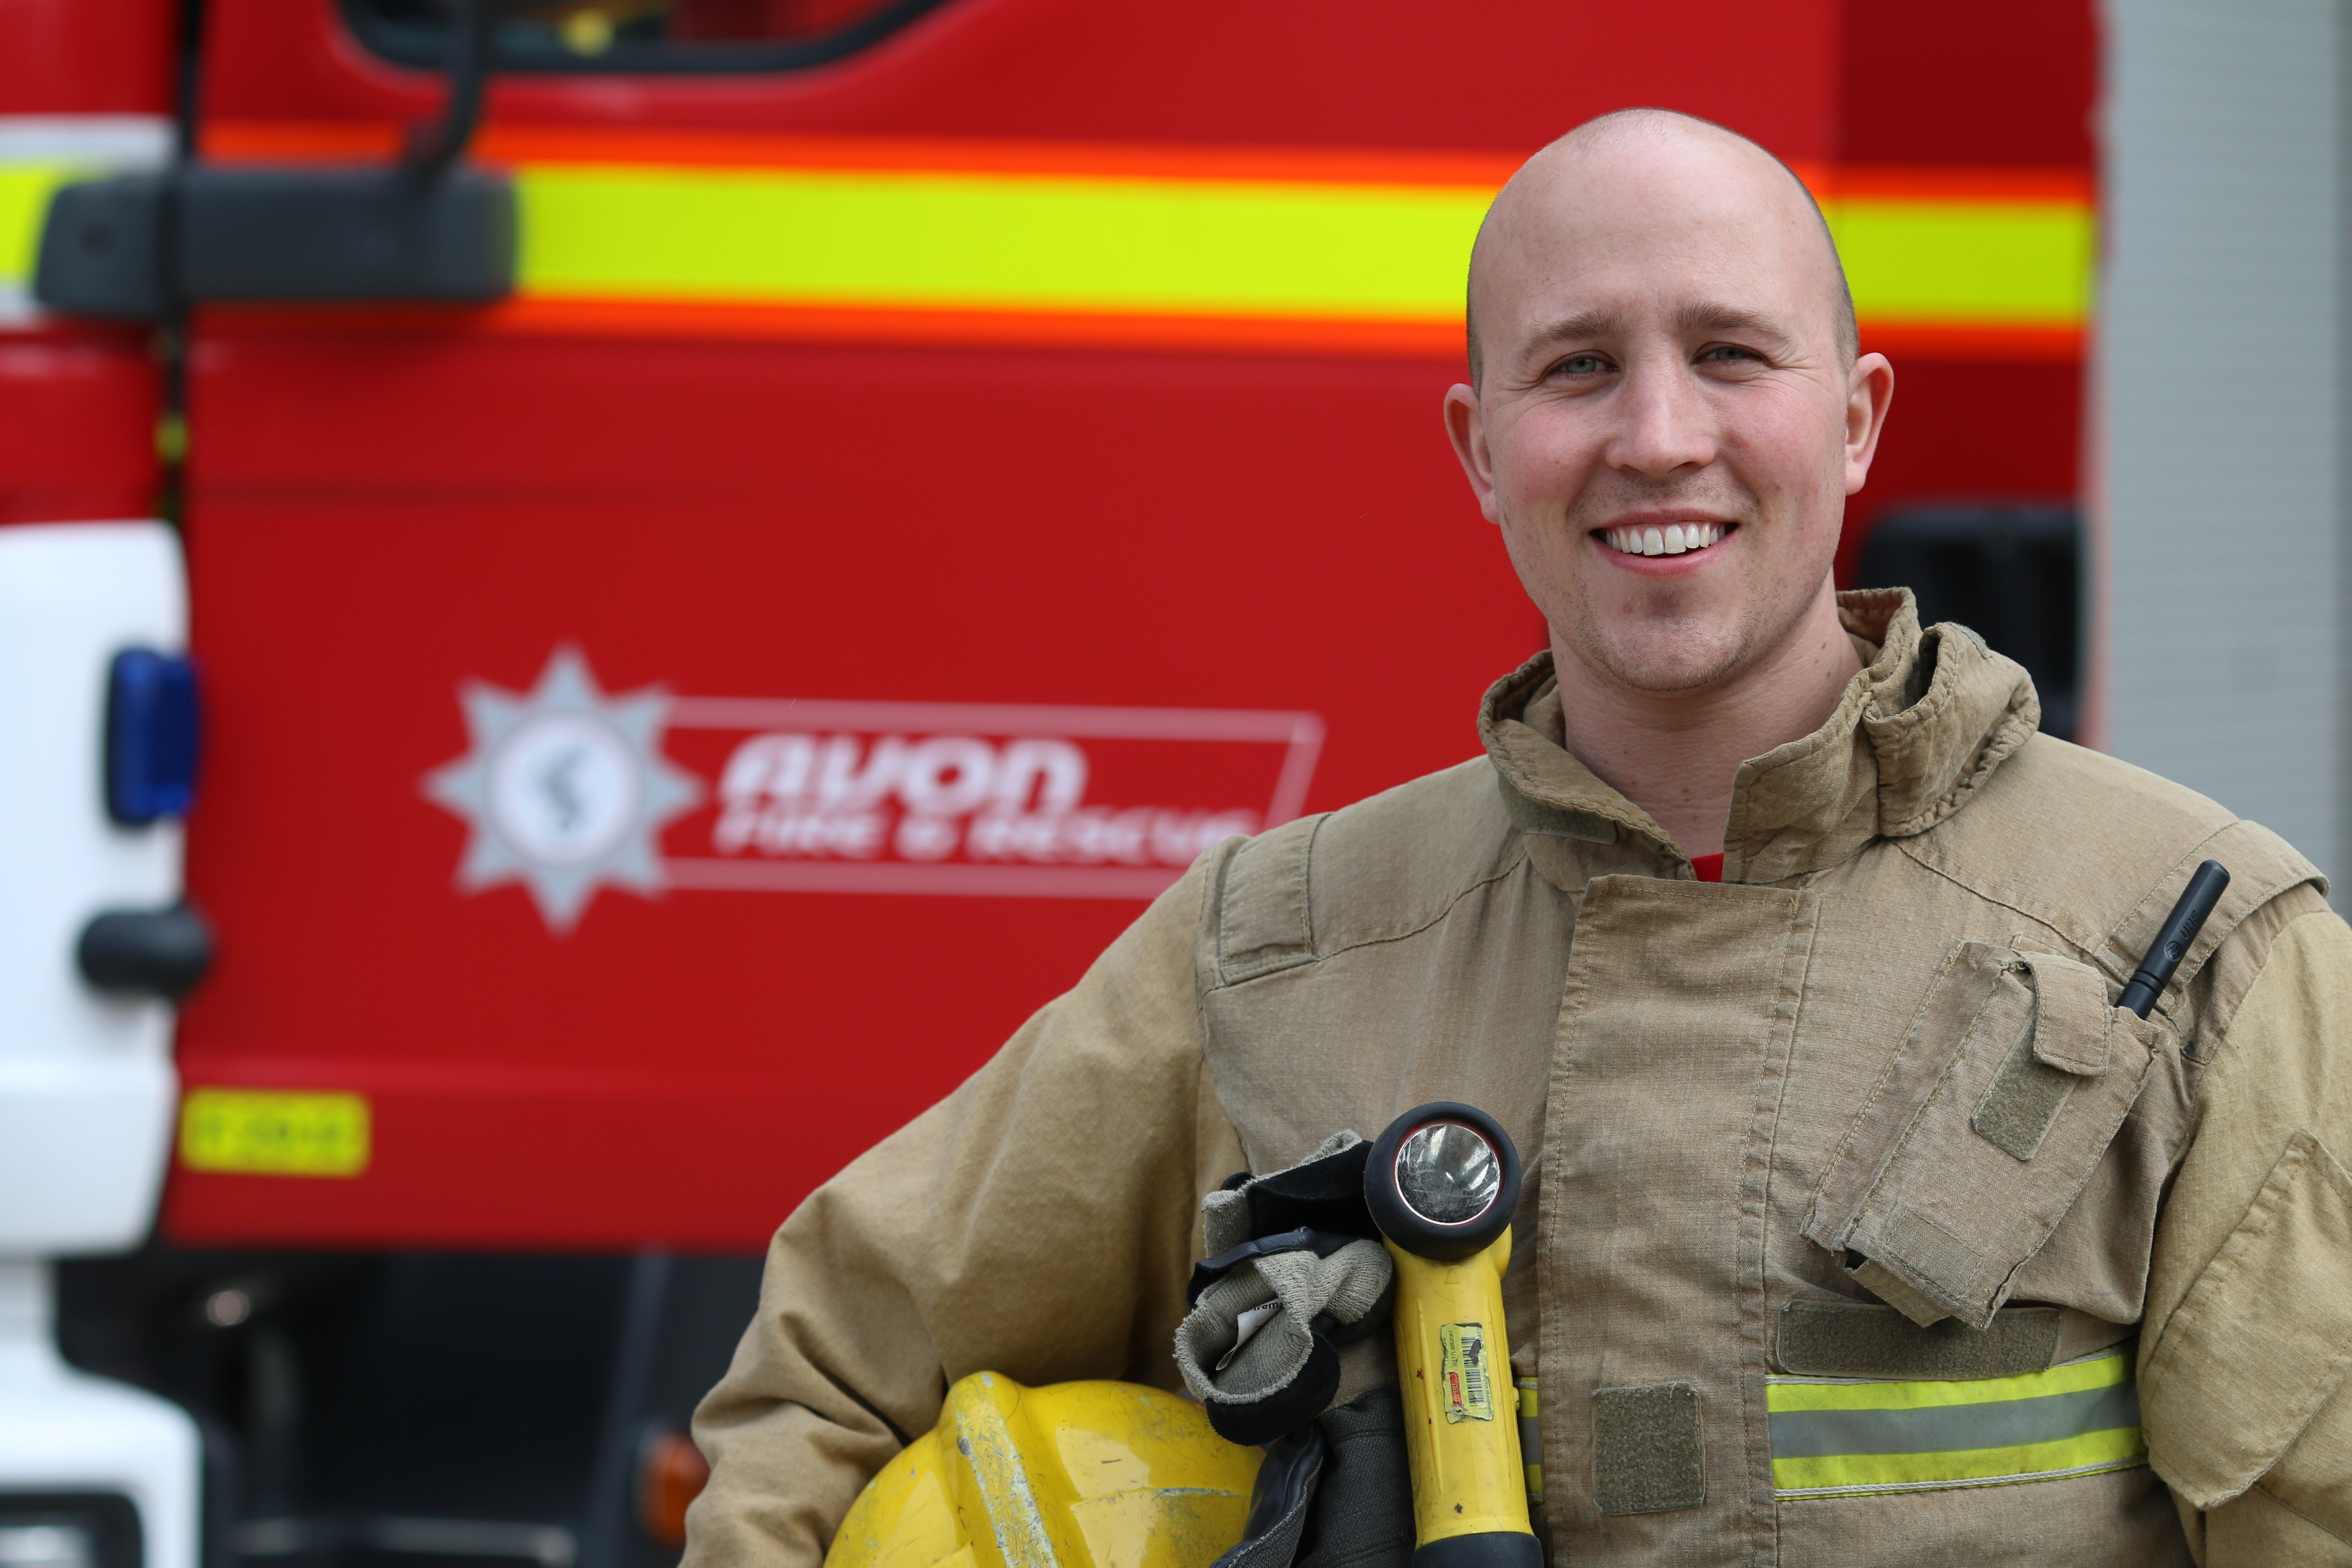 AF&RS delighted as firefighter recognised with Fellowship